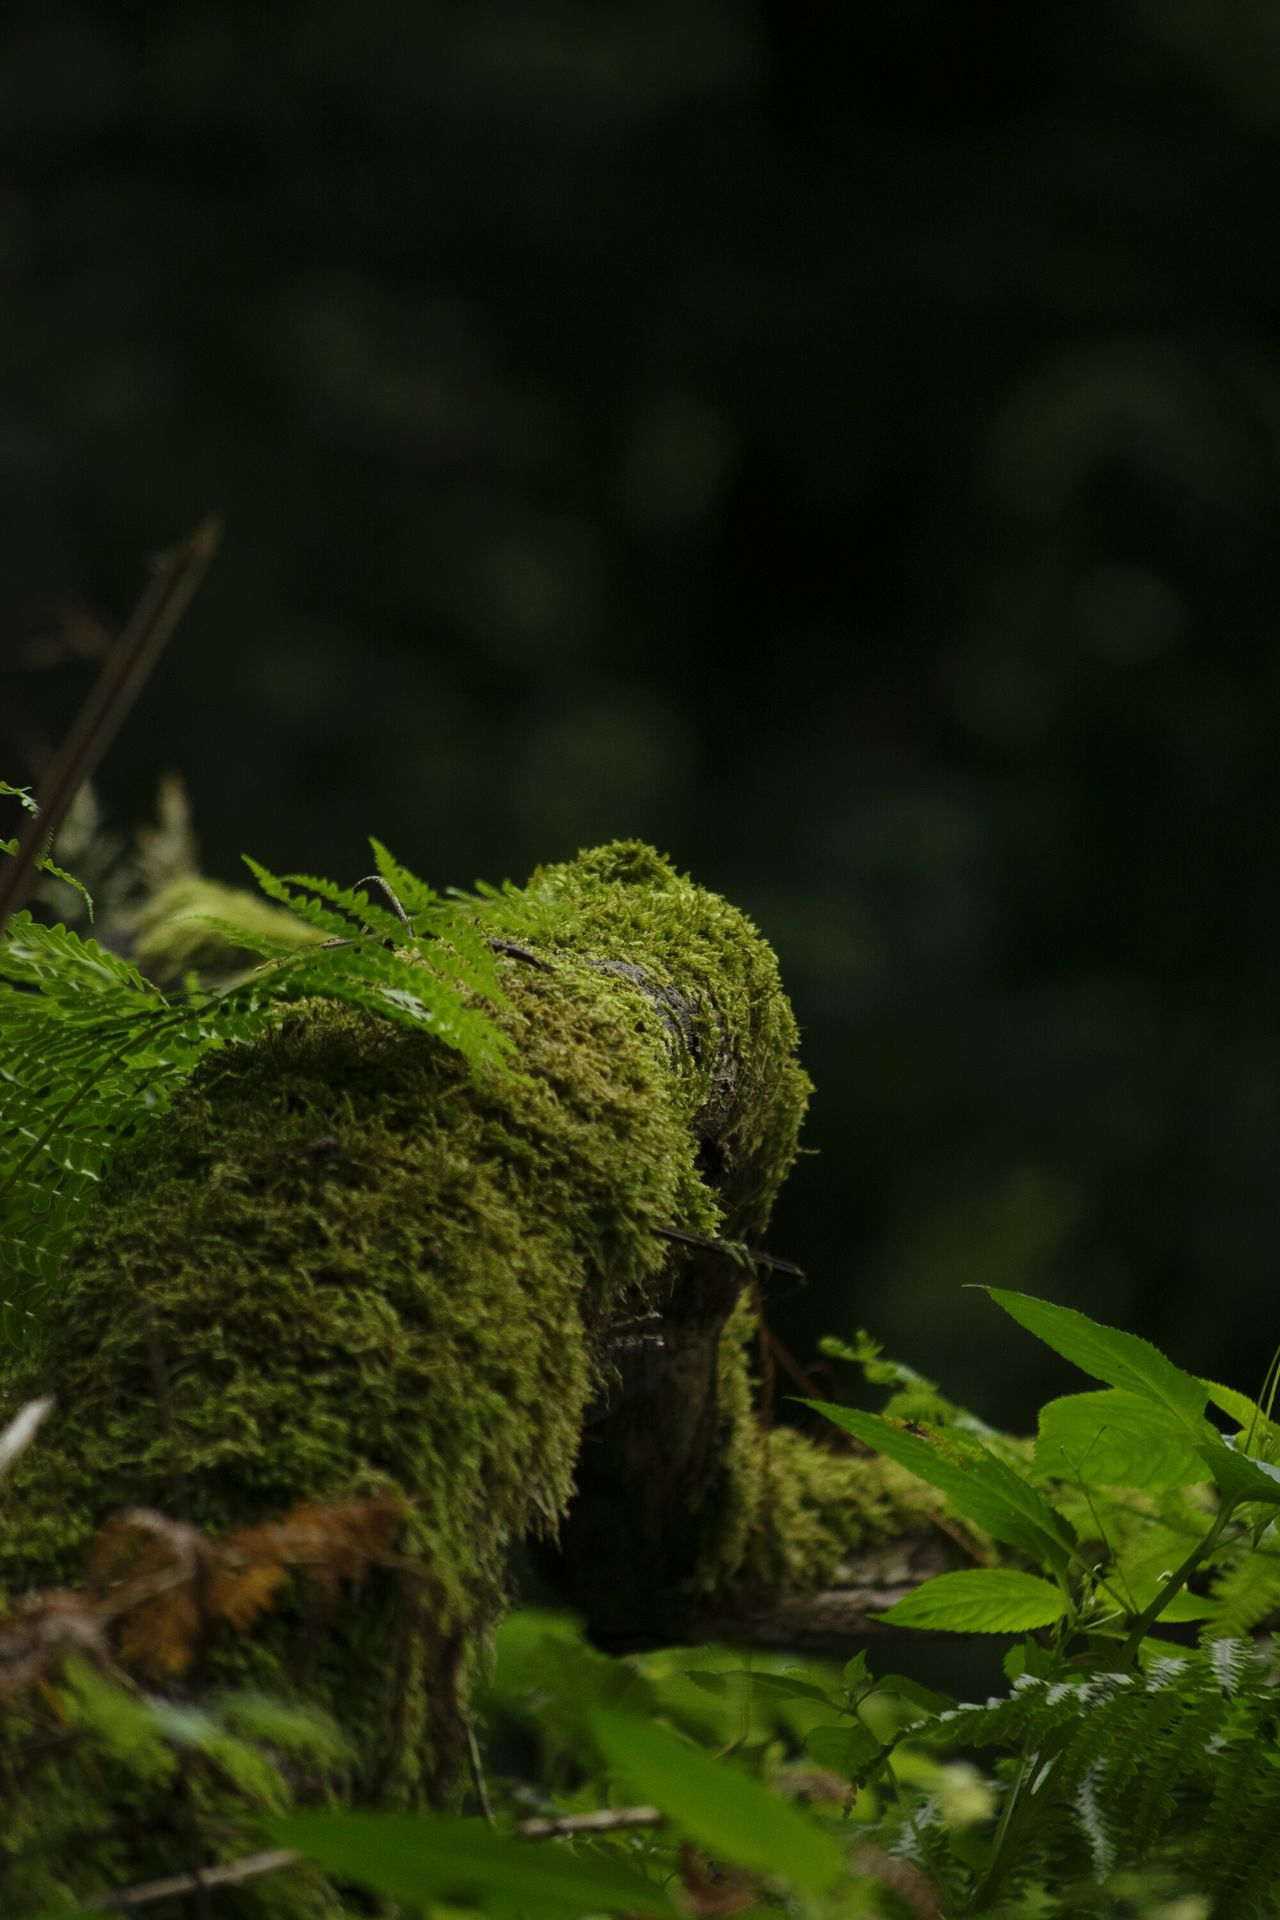 Forrest Photography Nature Photography Naturelovers Taking Photos Relaxing Enjoying Life Treetrunk Just Chilling Taking Photos